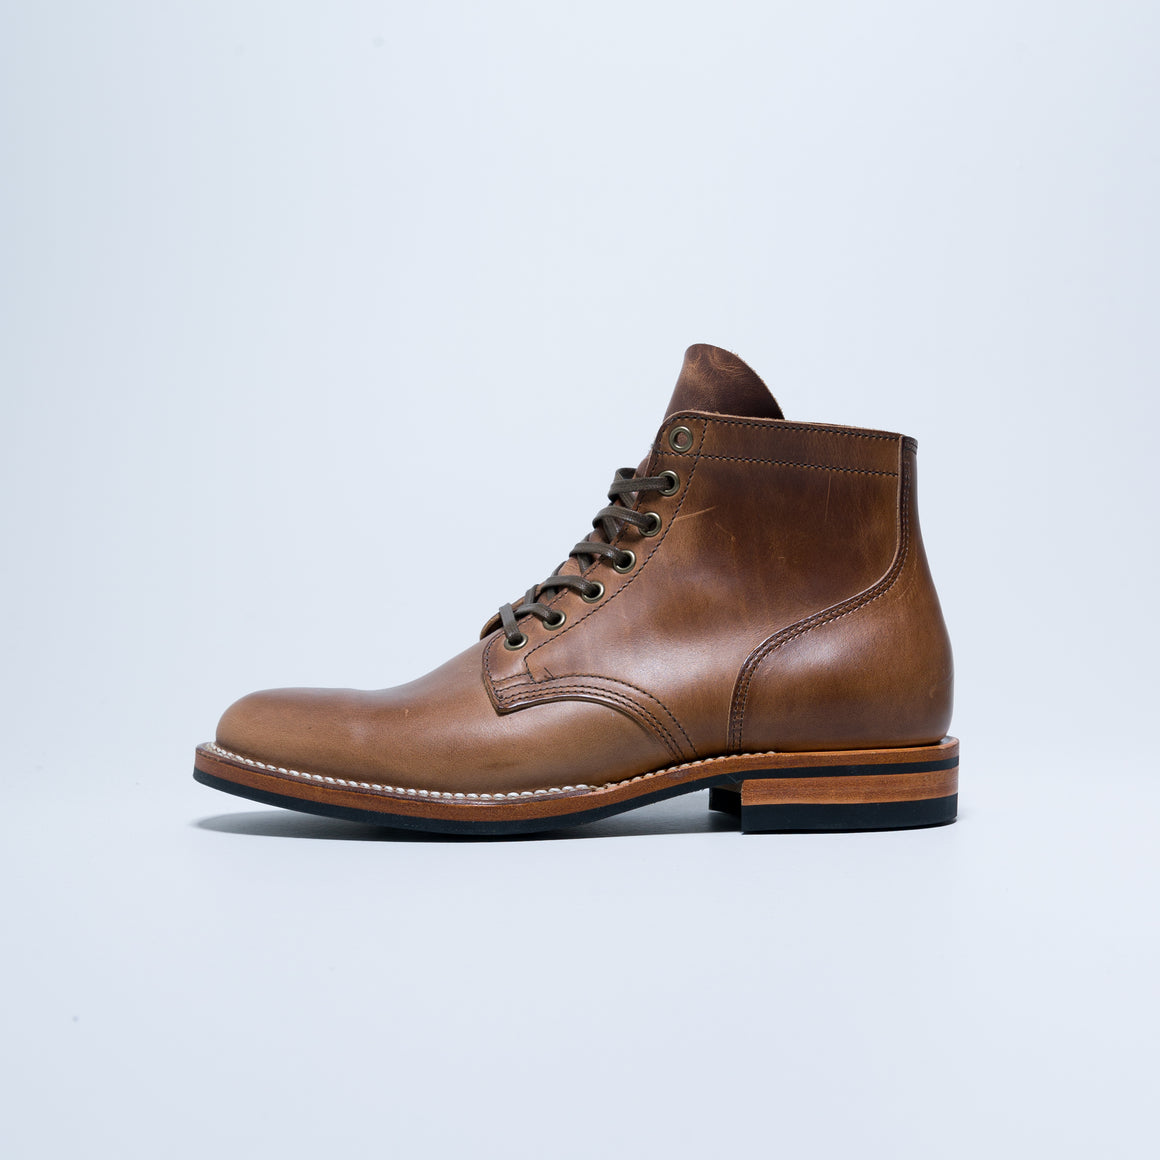 Service Boot - Natural Chromexcel - Up There